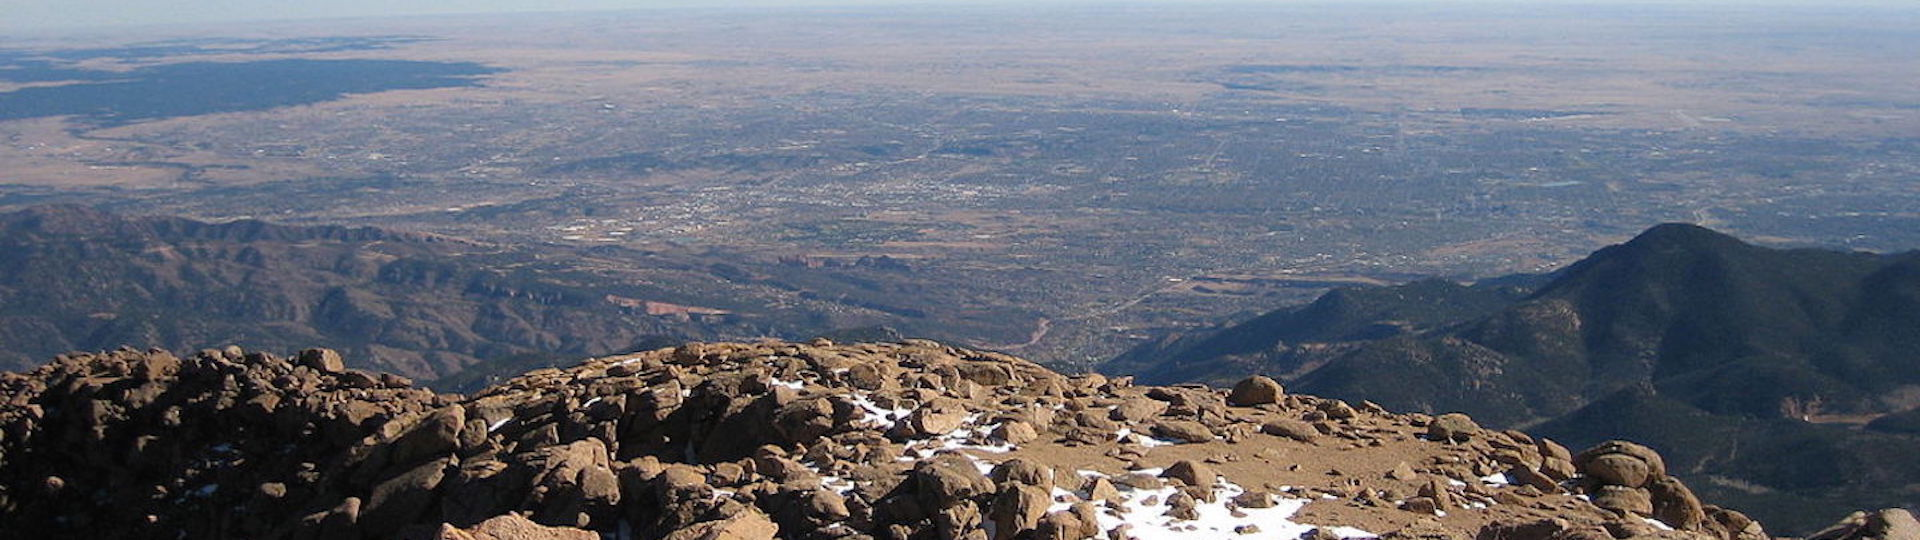 View from top of Pikes Peak